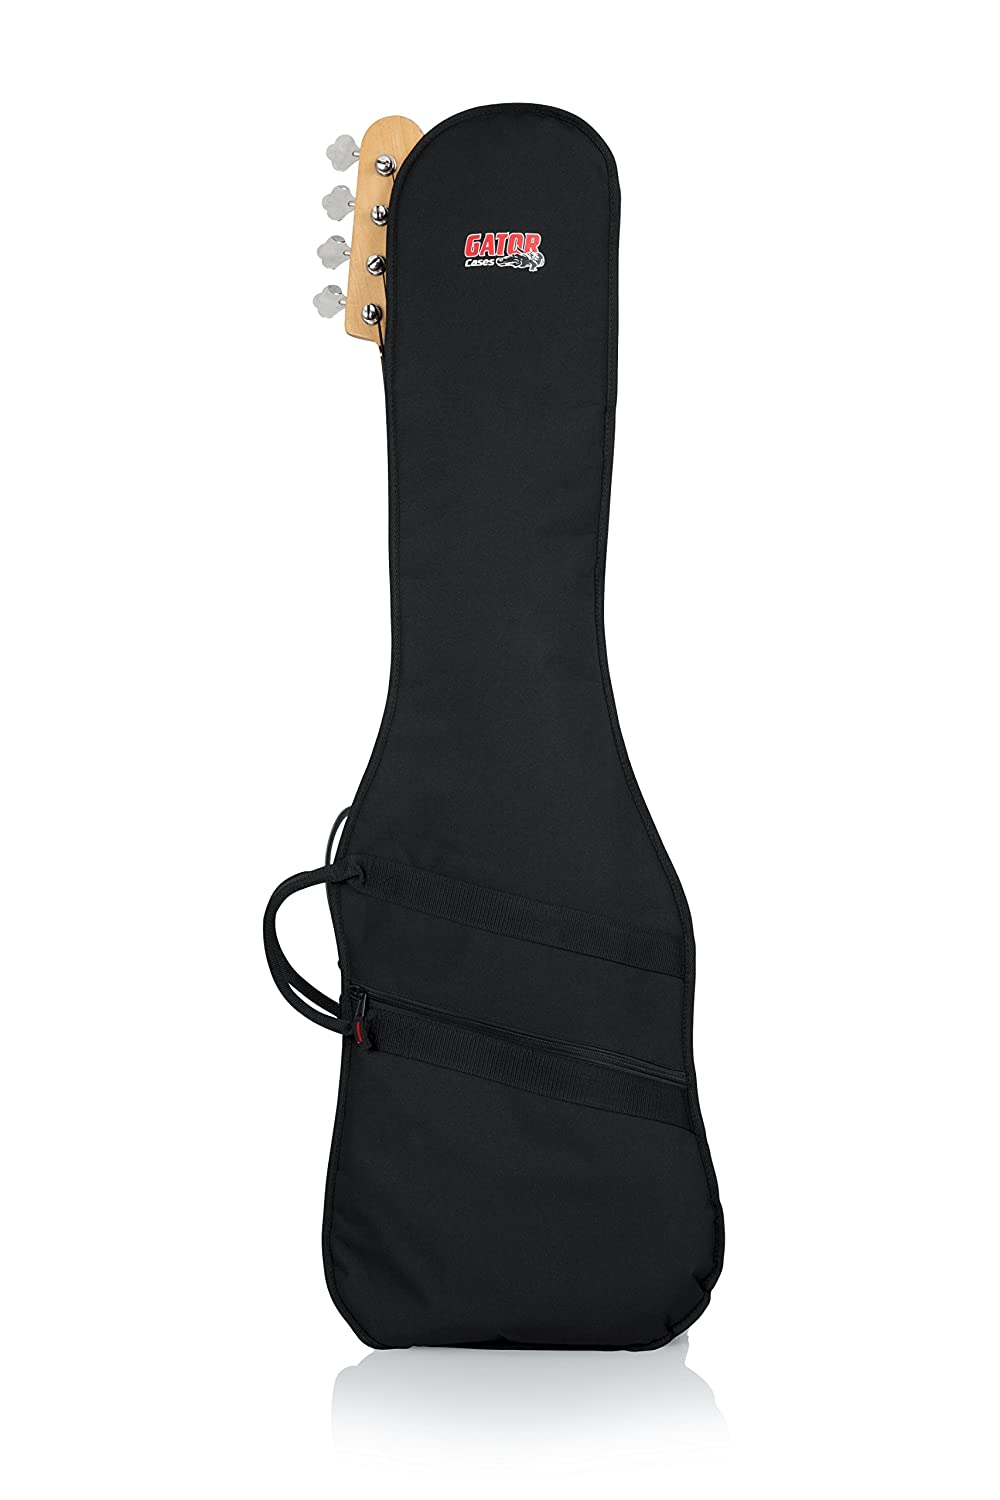 Gator Cases Electric Guitars GBE BASS Image 2